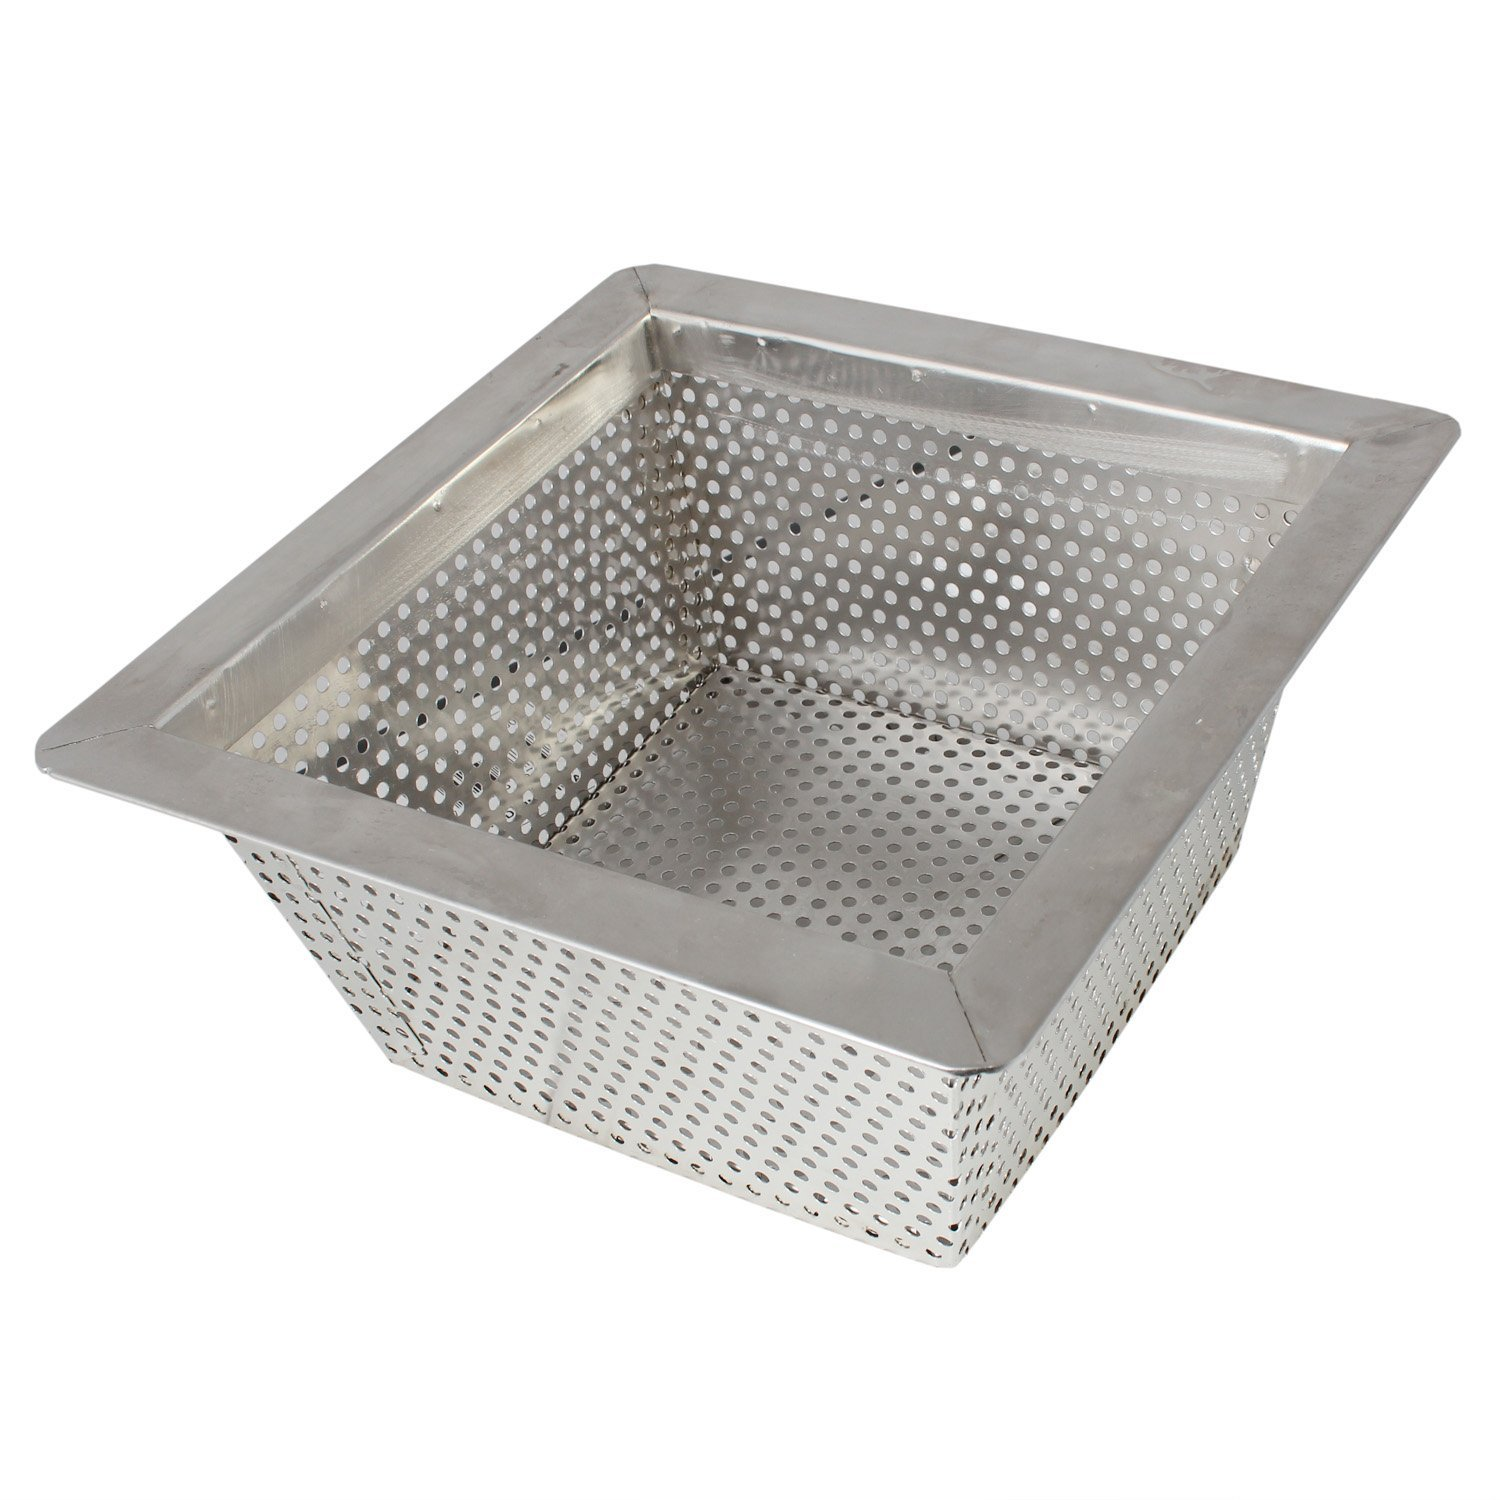 10 Inch Stainless Steel Floor Sink Basket For Restaurants